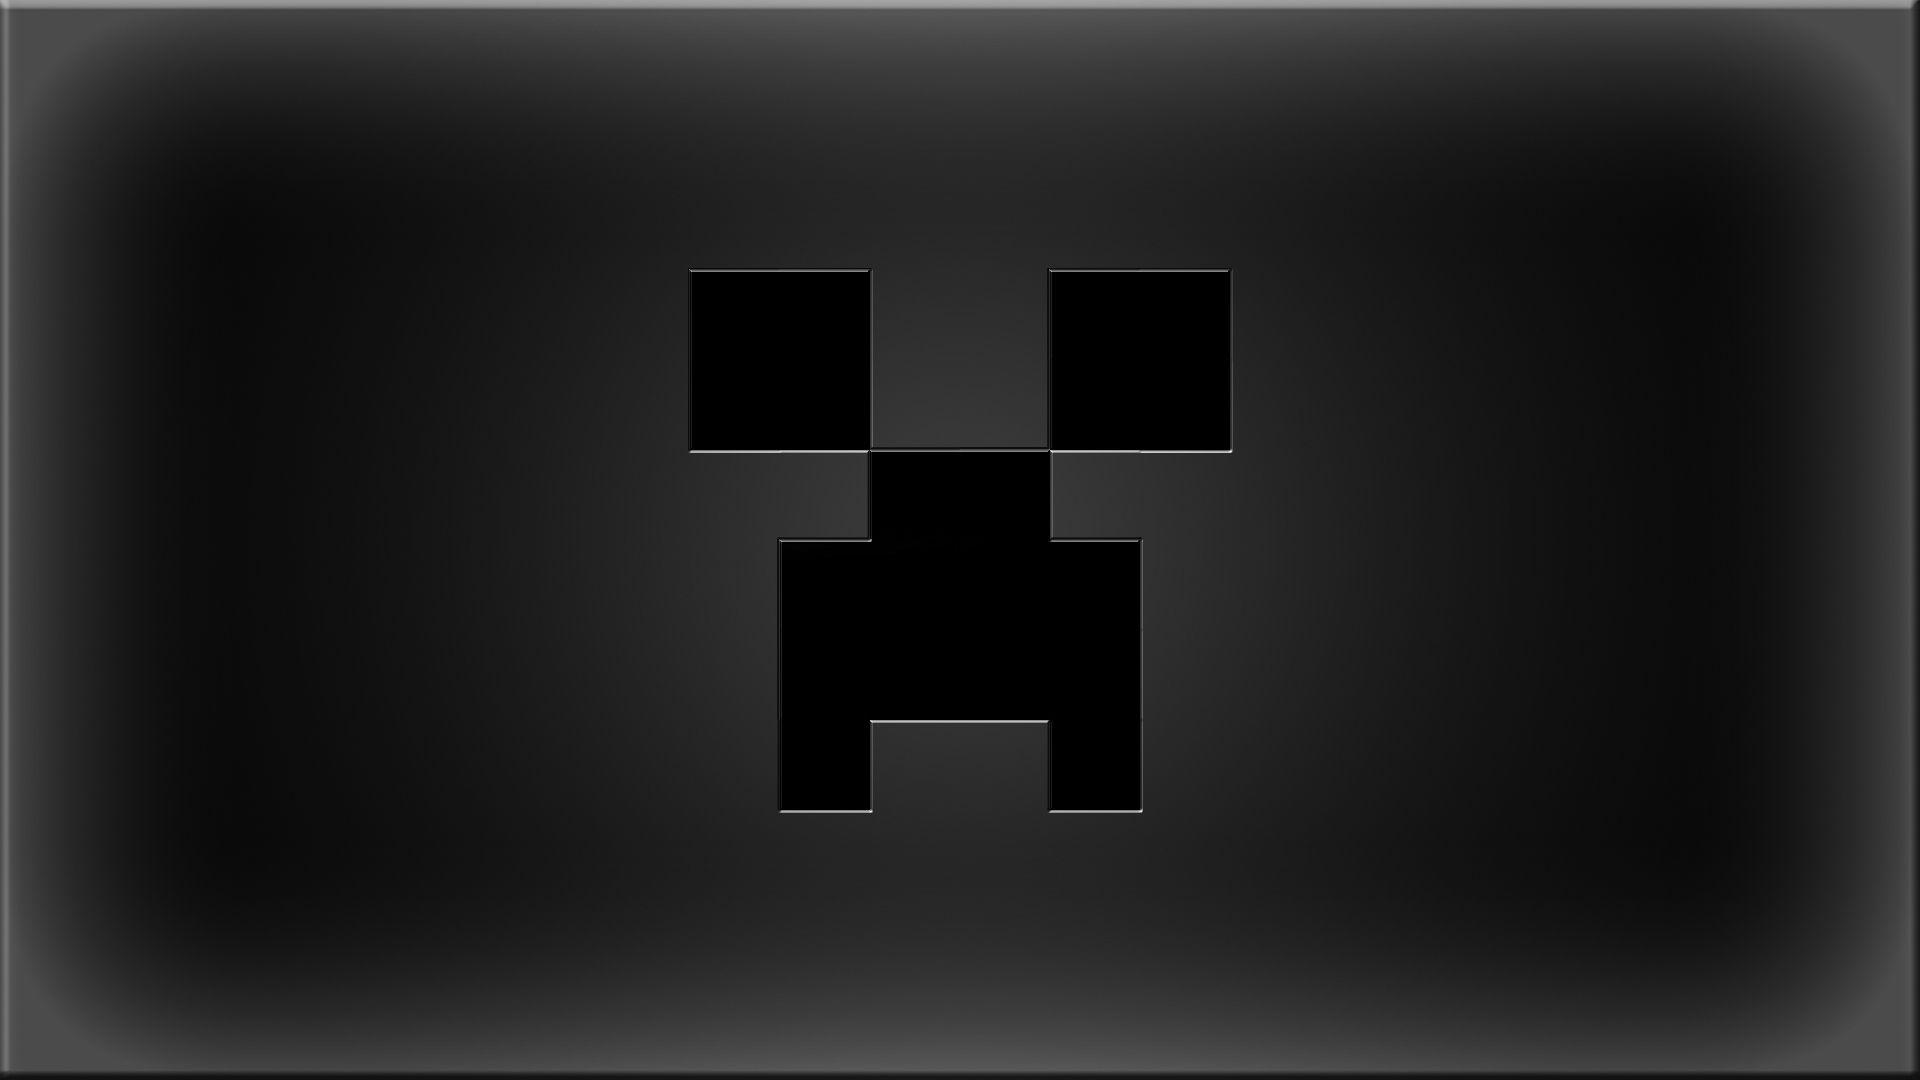 Cool Minecraft Creeper Wallpapers 1920x1080